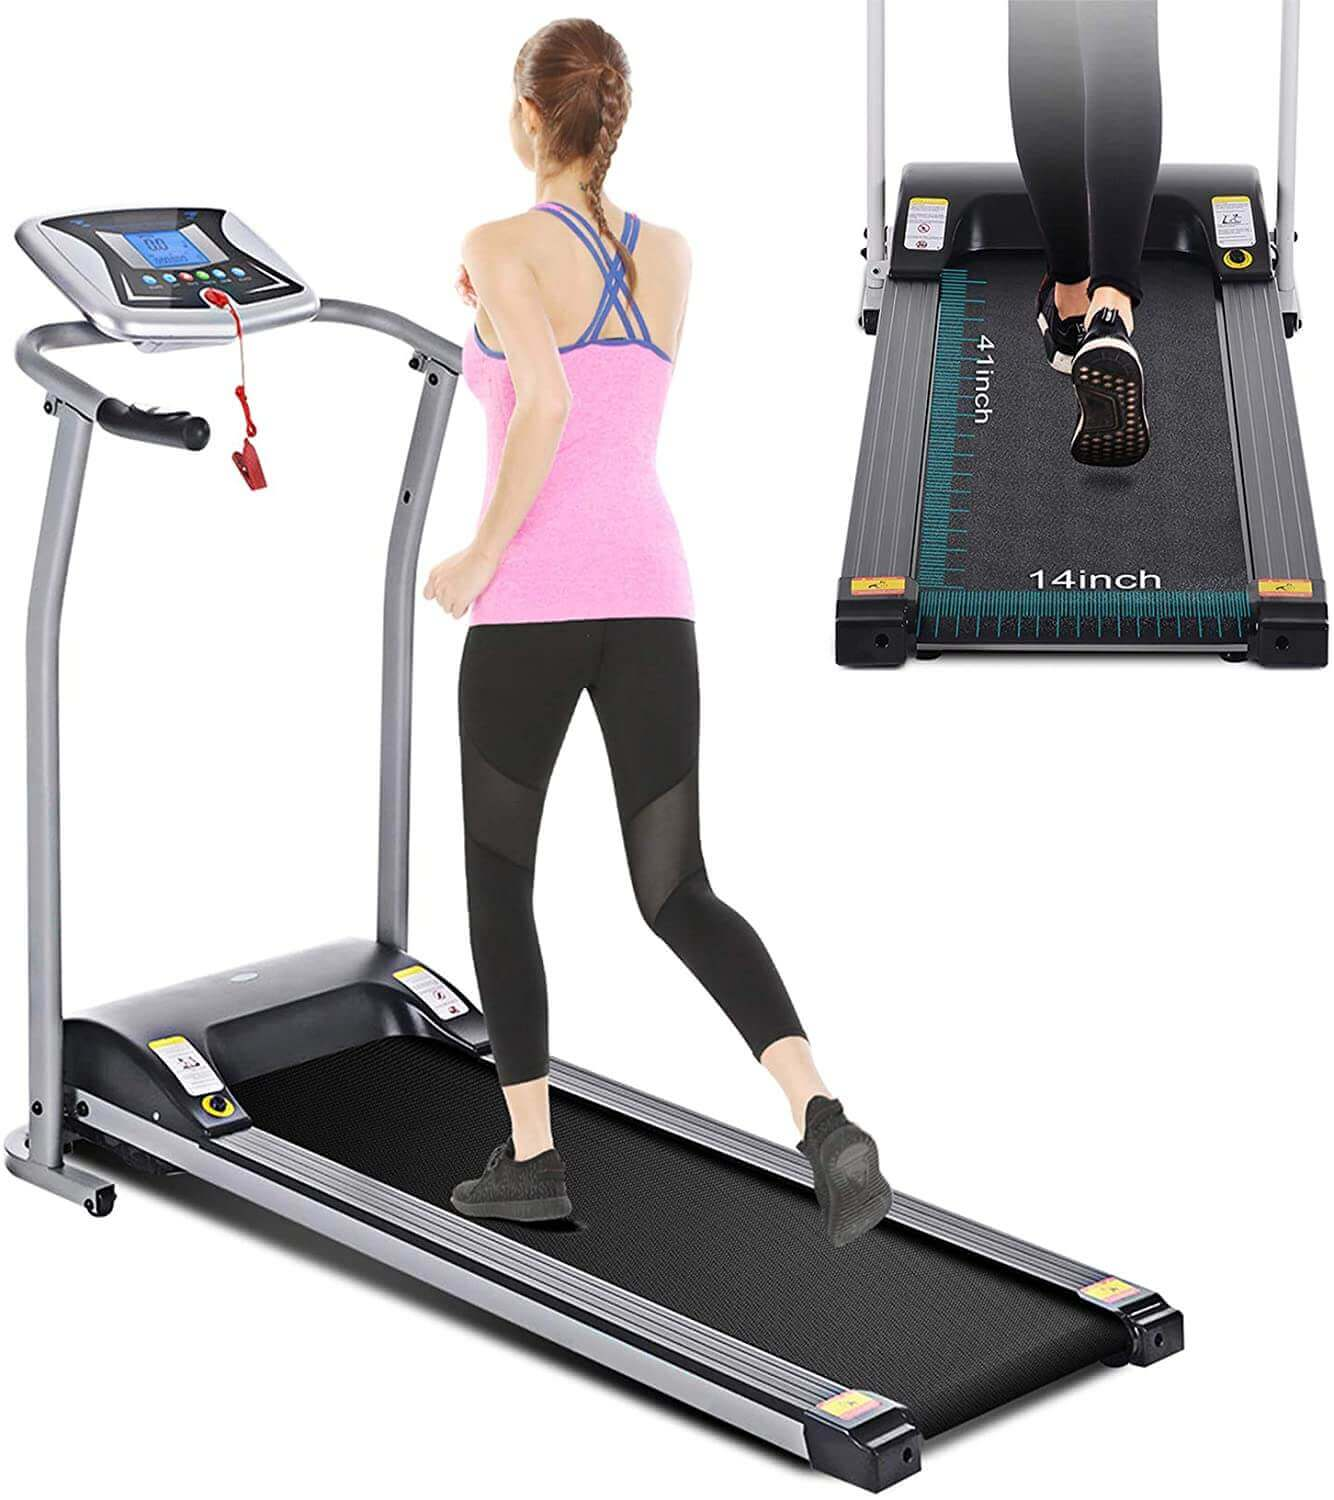 Mauccau Motorized, Electric, Folding, Portable Treadmill for Home - Low Noise